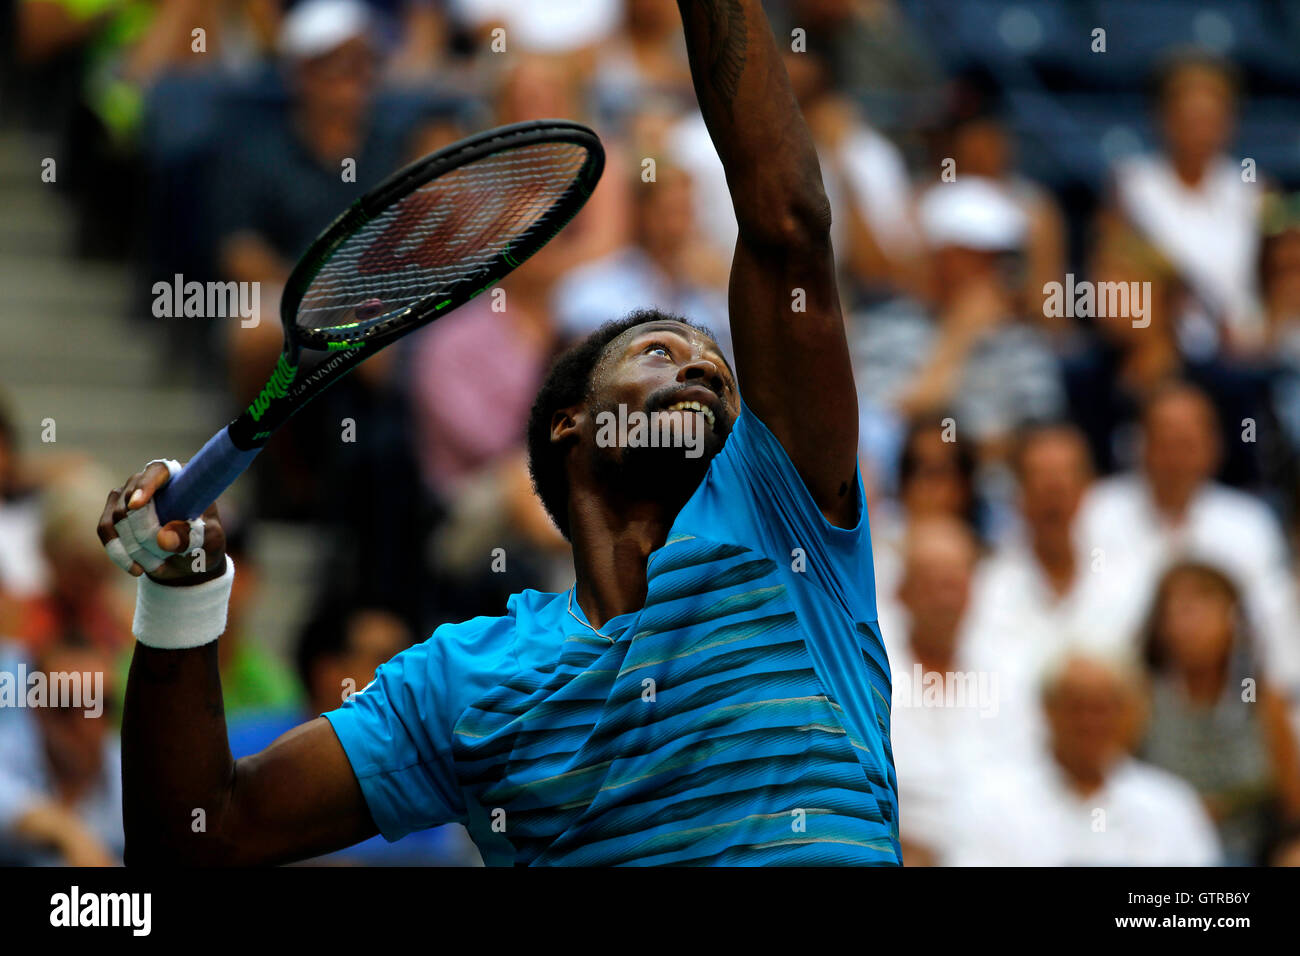 New York, United States. 09th Sep, 2016. Gael Monfils of France serving during his semi final match against Novak - Stock Image